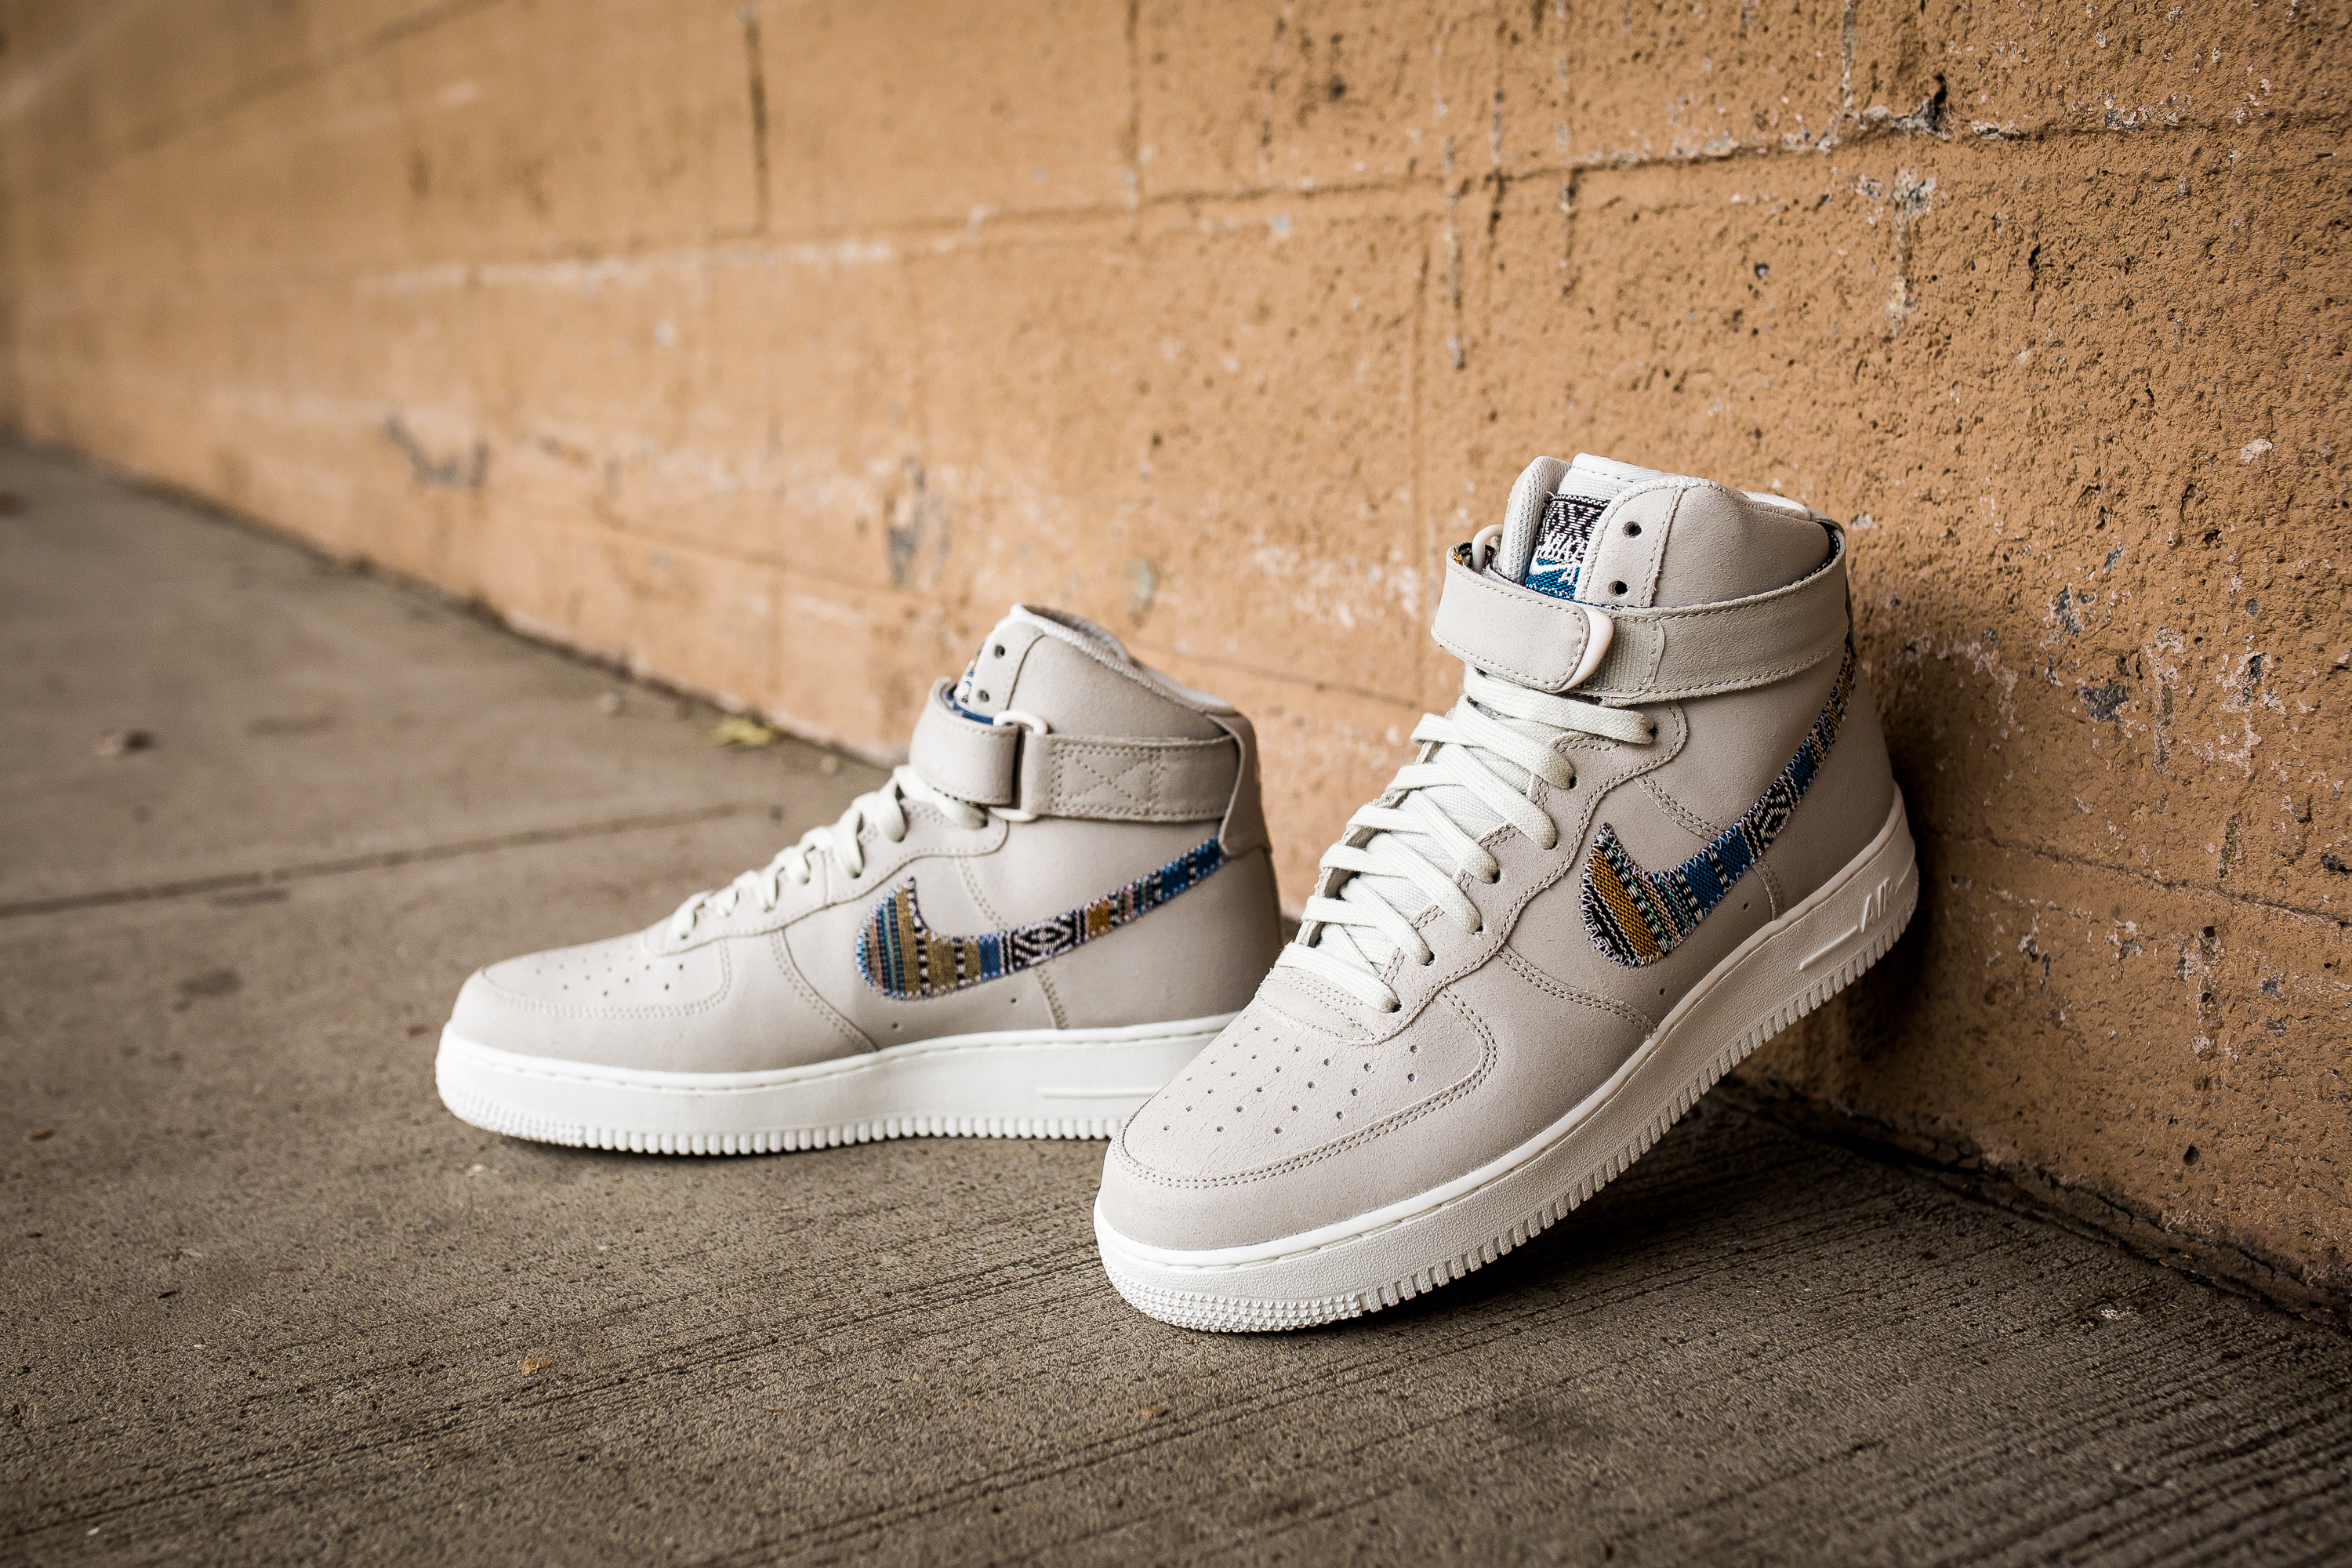 nike su17 air force 1 07 lv8 air force 1 high 07 lv8 packer shoes. Black Bedroom Furniture Sets. Home Design Ideas